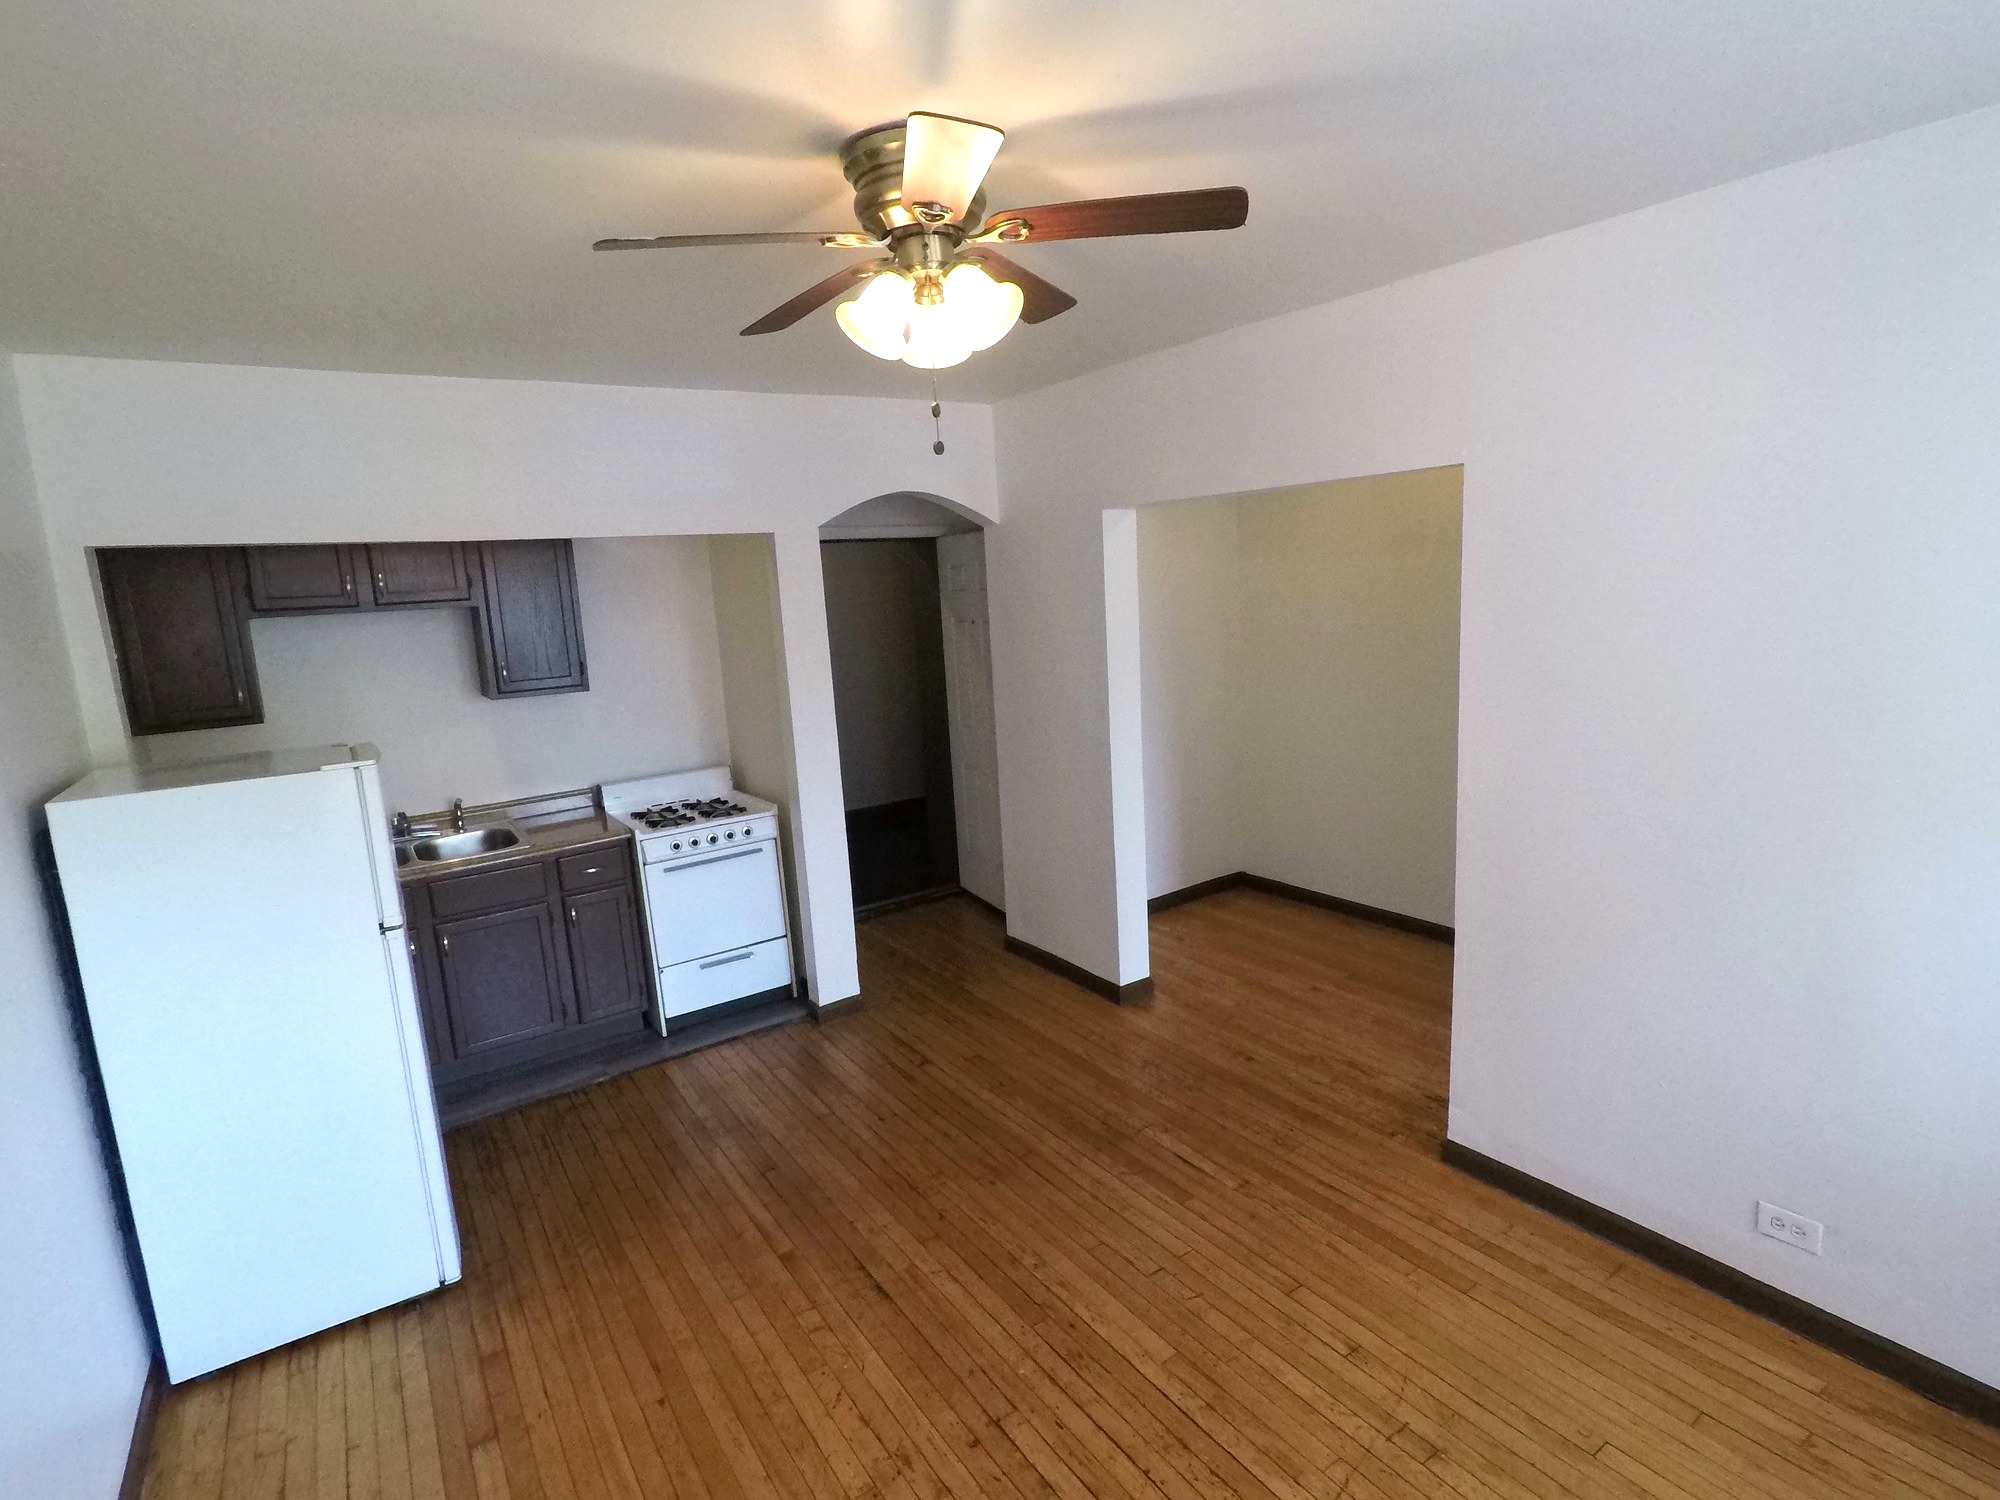 60644 Studio Apartment